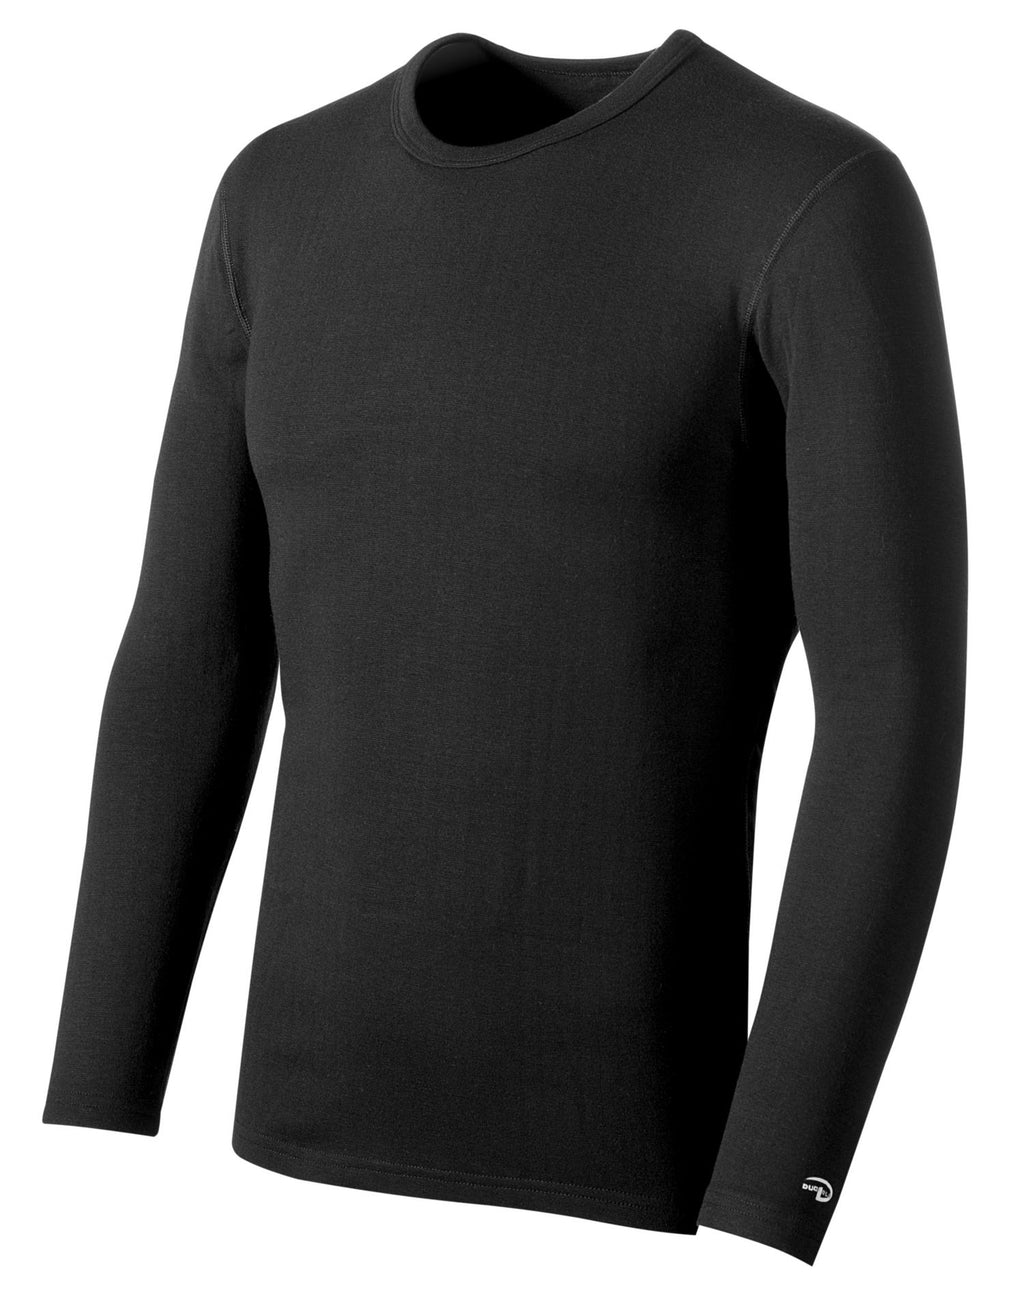 8eb8e76c9b3 Duofold by Champion Varitherm Performance 2-Layer Men s Long-Sleeve Thermal  Shirt